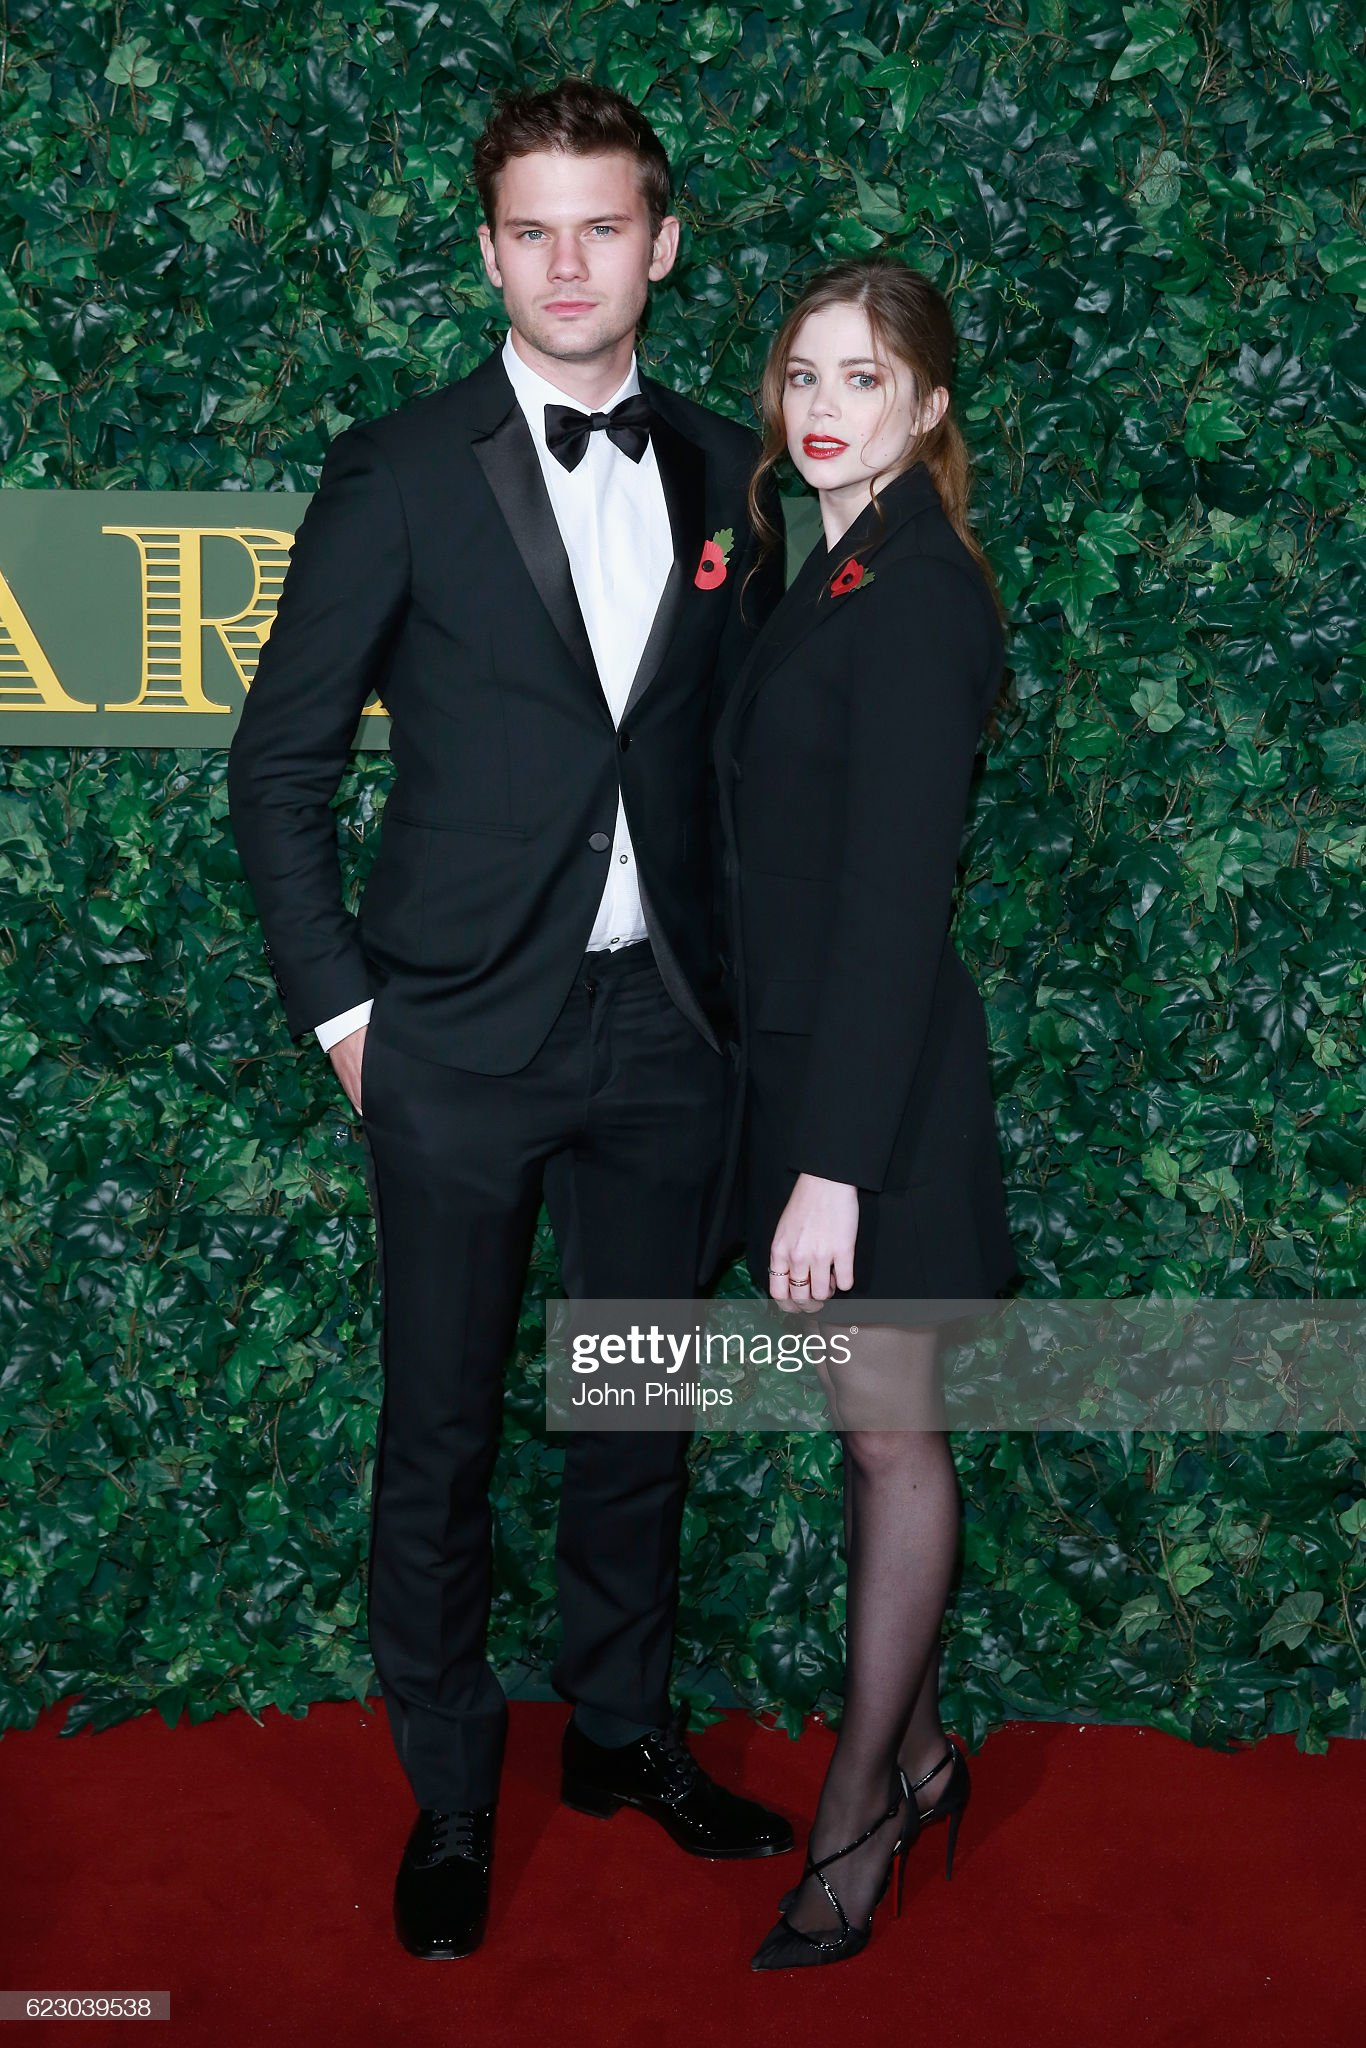 ¿Cuánto mide Charlotte Hope? - Real height Jeremy-irvine-and-charlotte-hope-attend-the-london-evening-standard-picture-id623039538?s=2048x2048